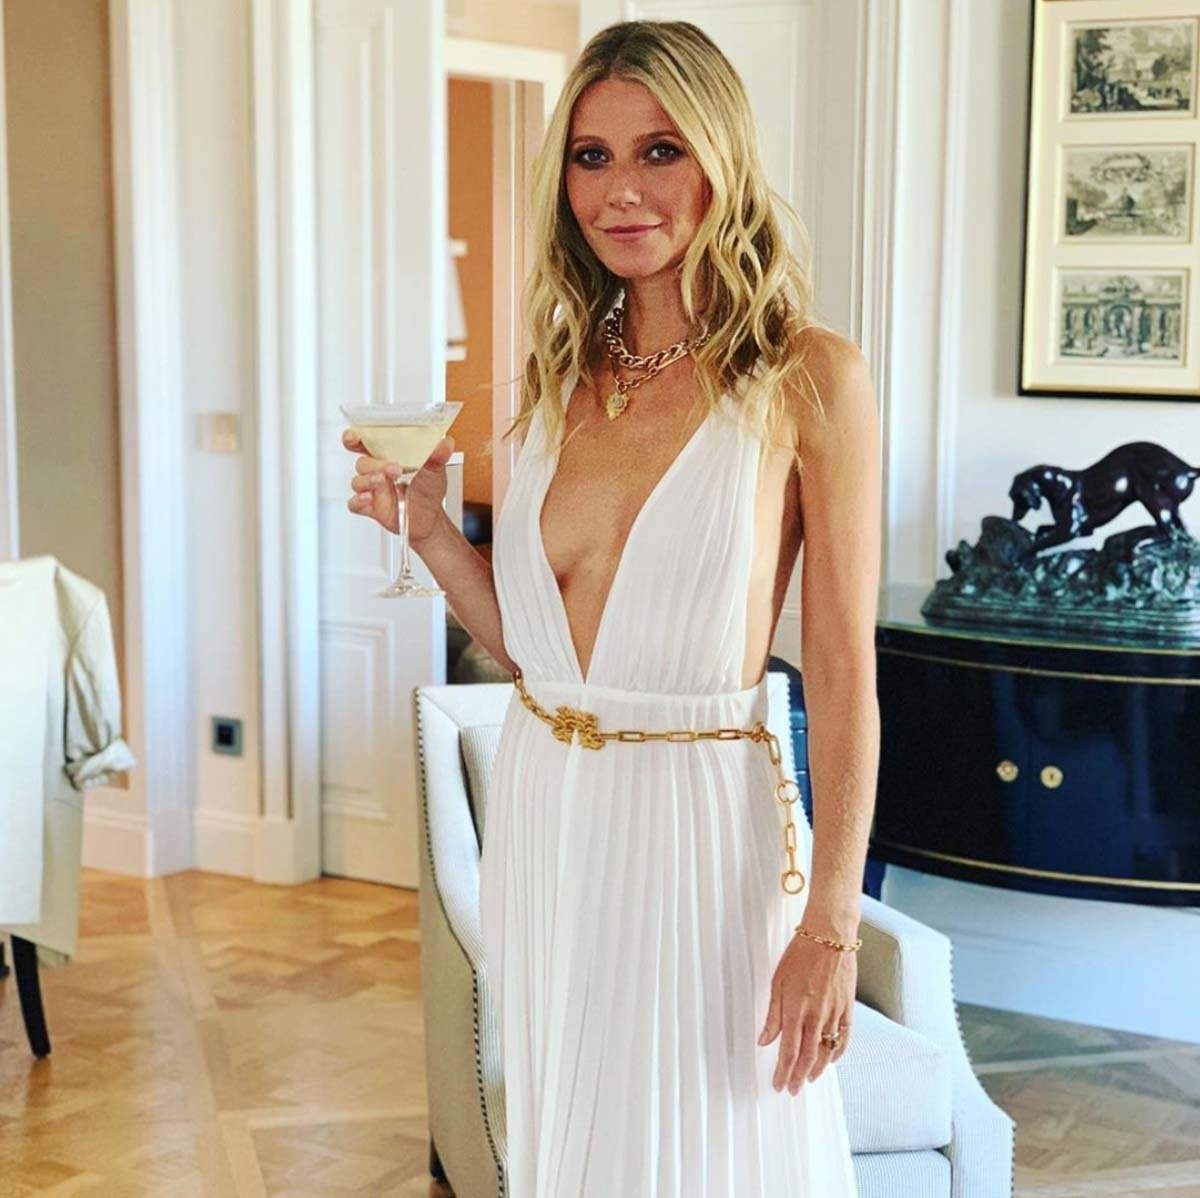 Gwyneth Paltrow stuns the internet with her beautiful 'birthday suit' picture